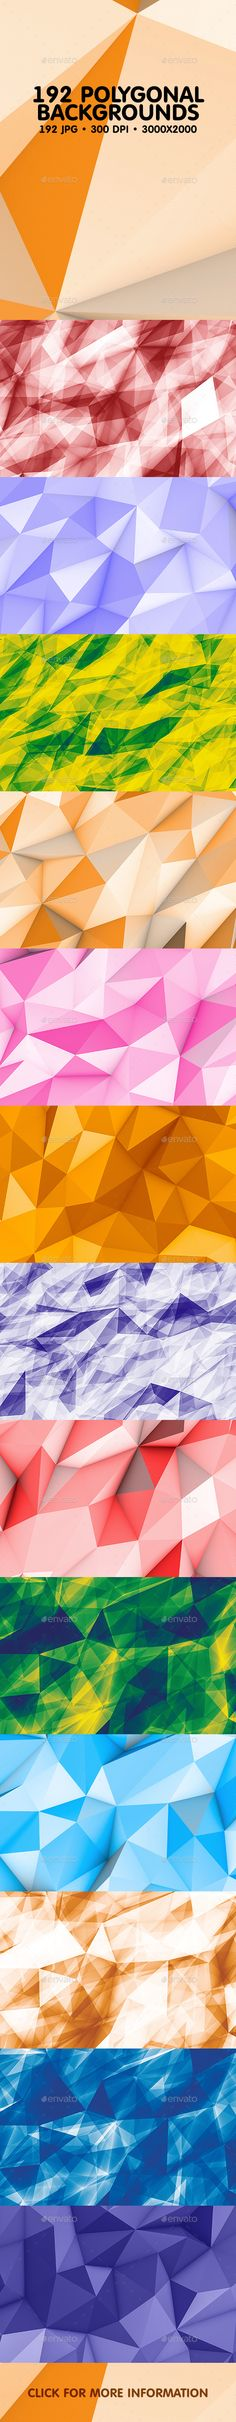 192 Polygonal Backgrounds Bundle by ArtefBones This pack contains 192 jpg different abstract flat and 3d polygon backgrounds for your projects. You can use these backgrounds in